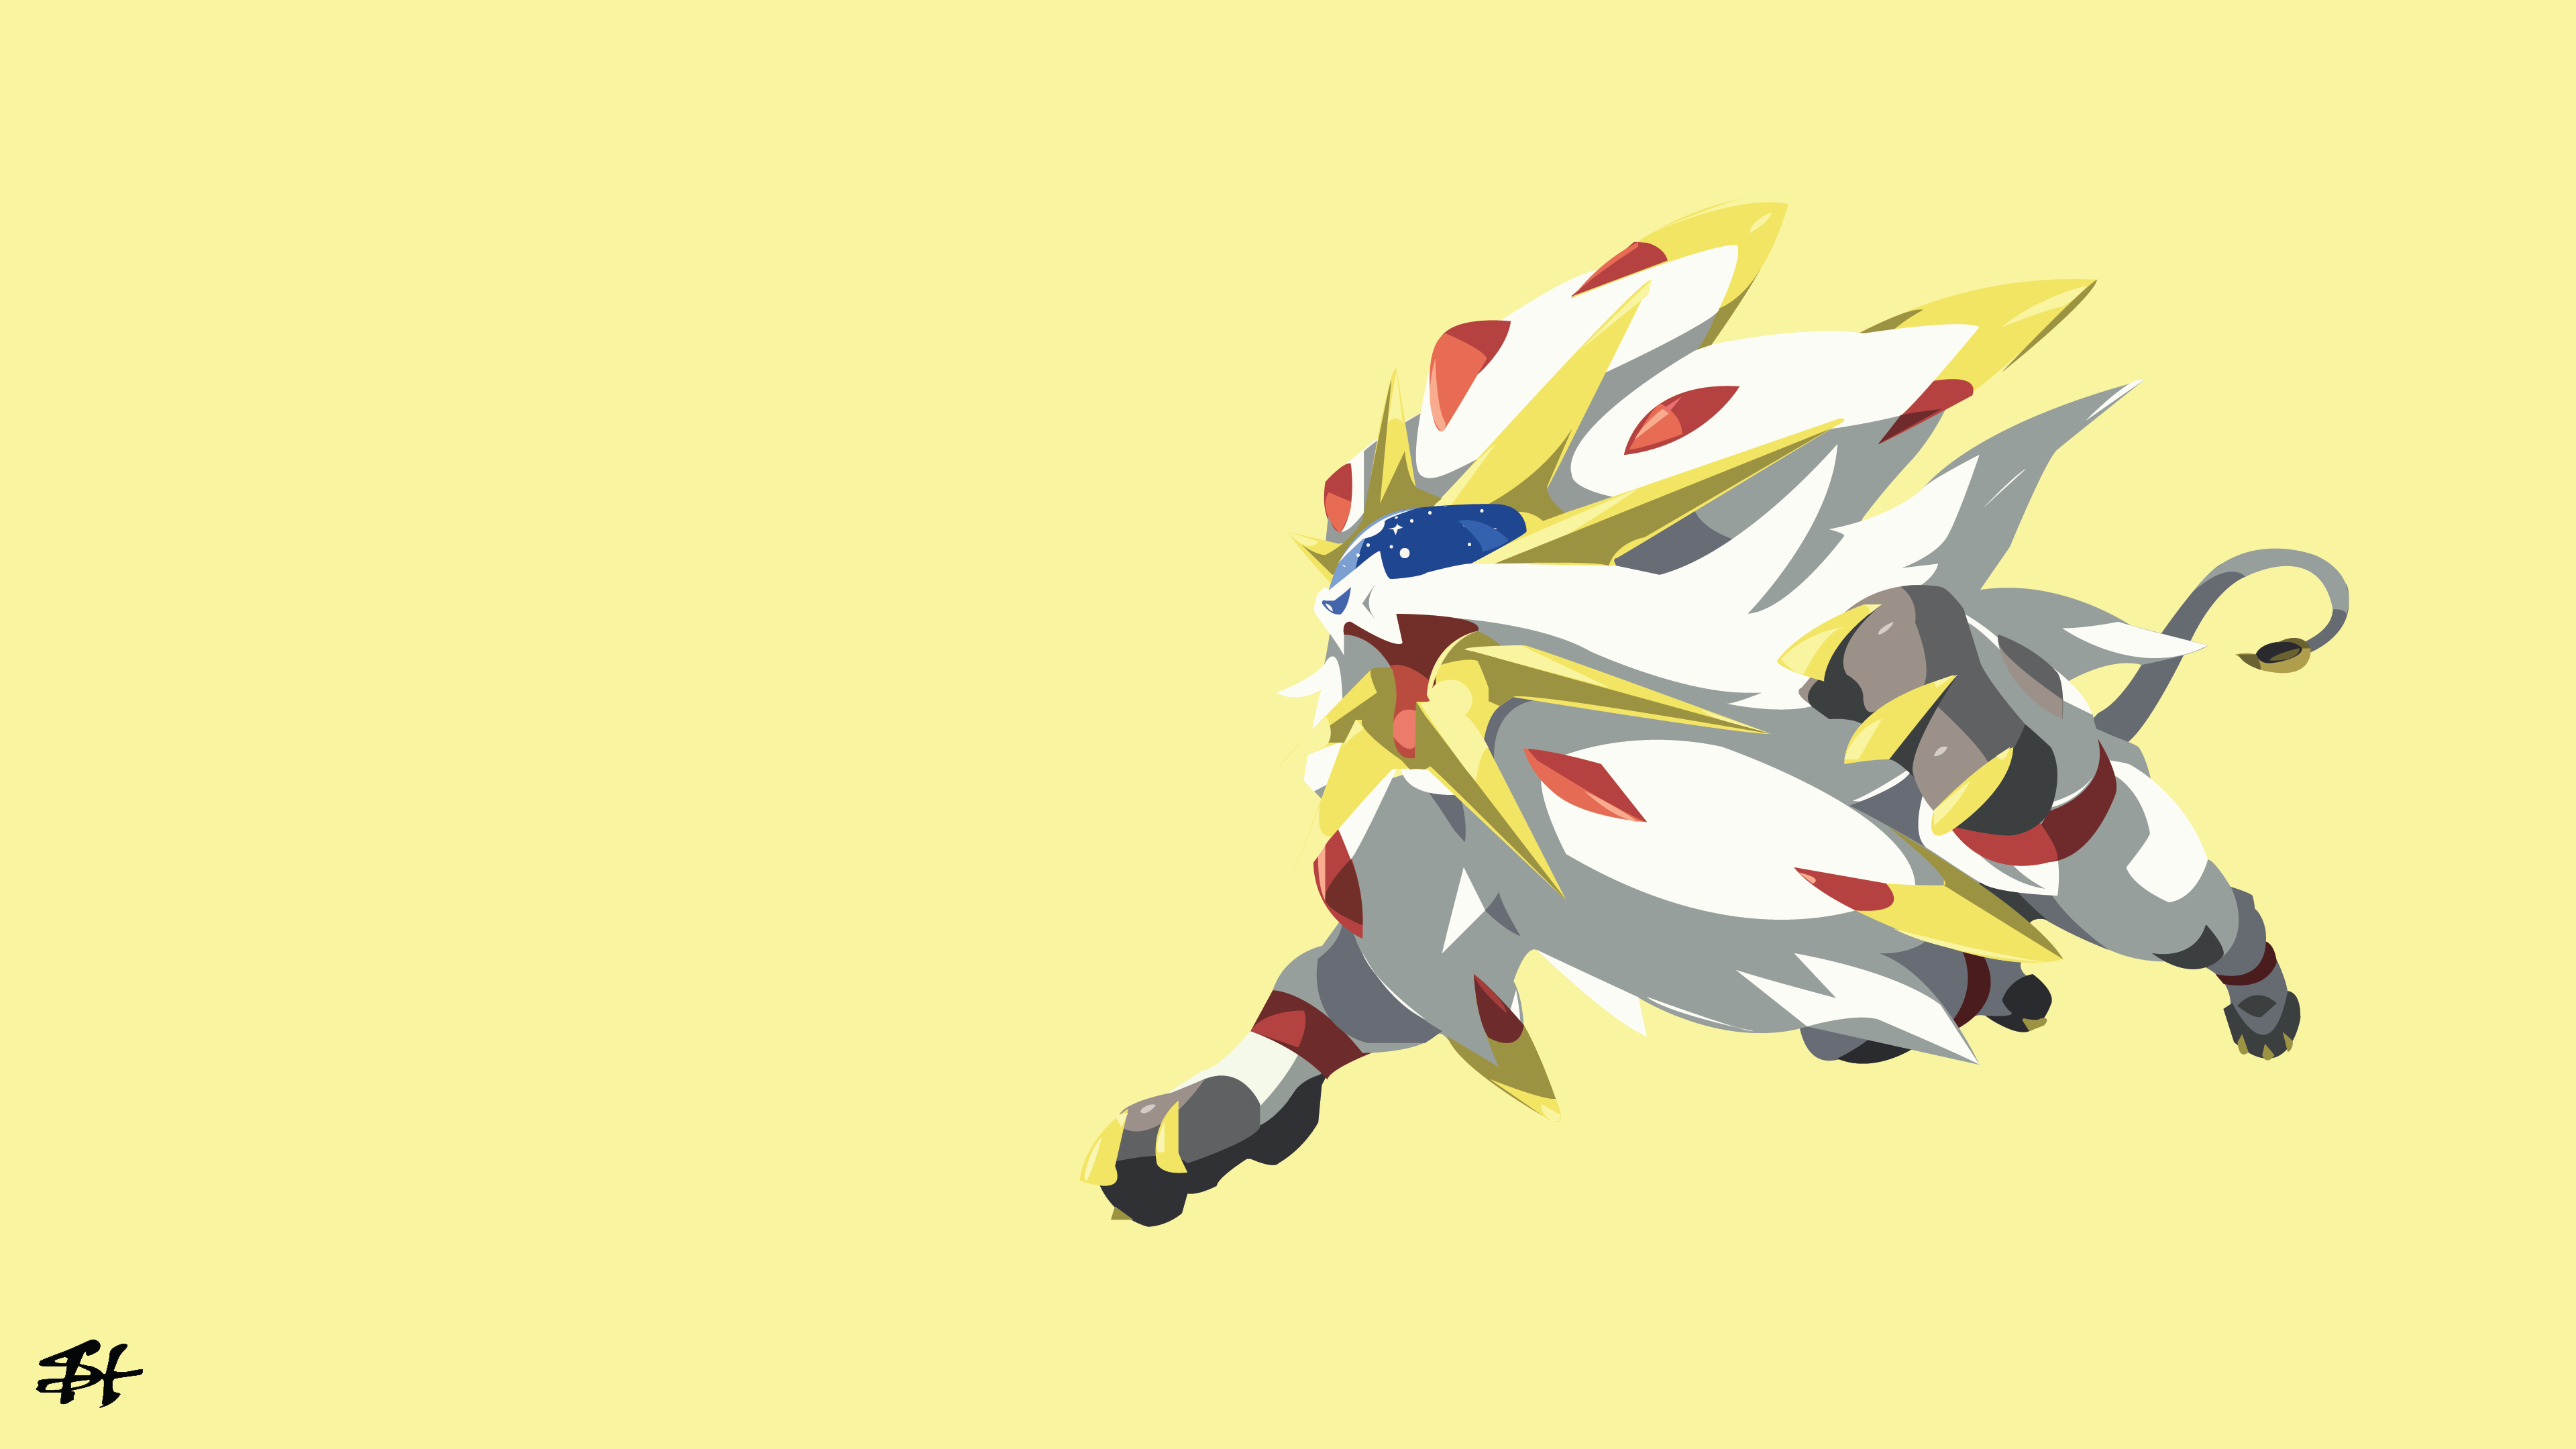 Pokemon Sun And Moon Wallpaper: Solgaleo 4k Ultra HD Wallpaper And Background Image